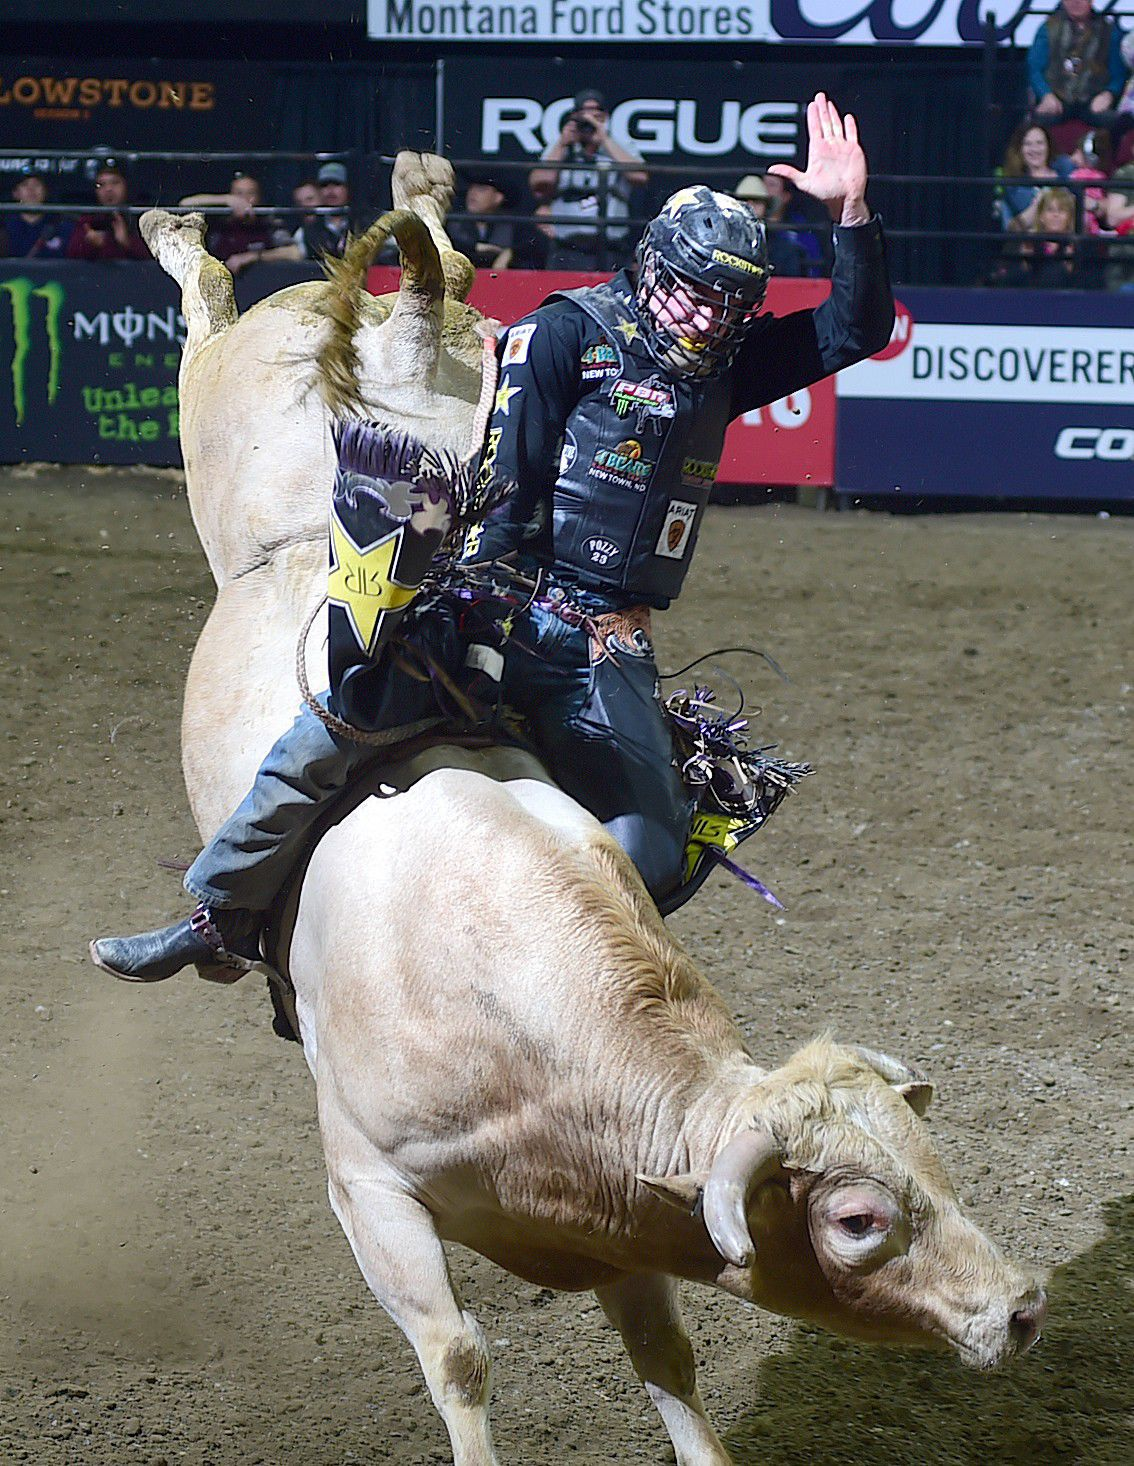 Strong final 2 rounds net Cody Teel the Professional Bull